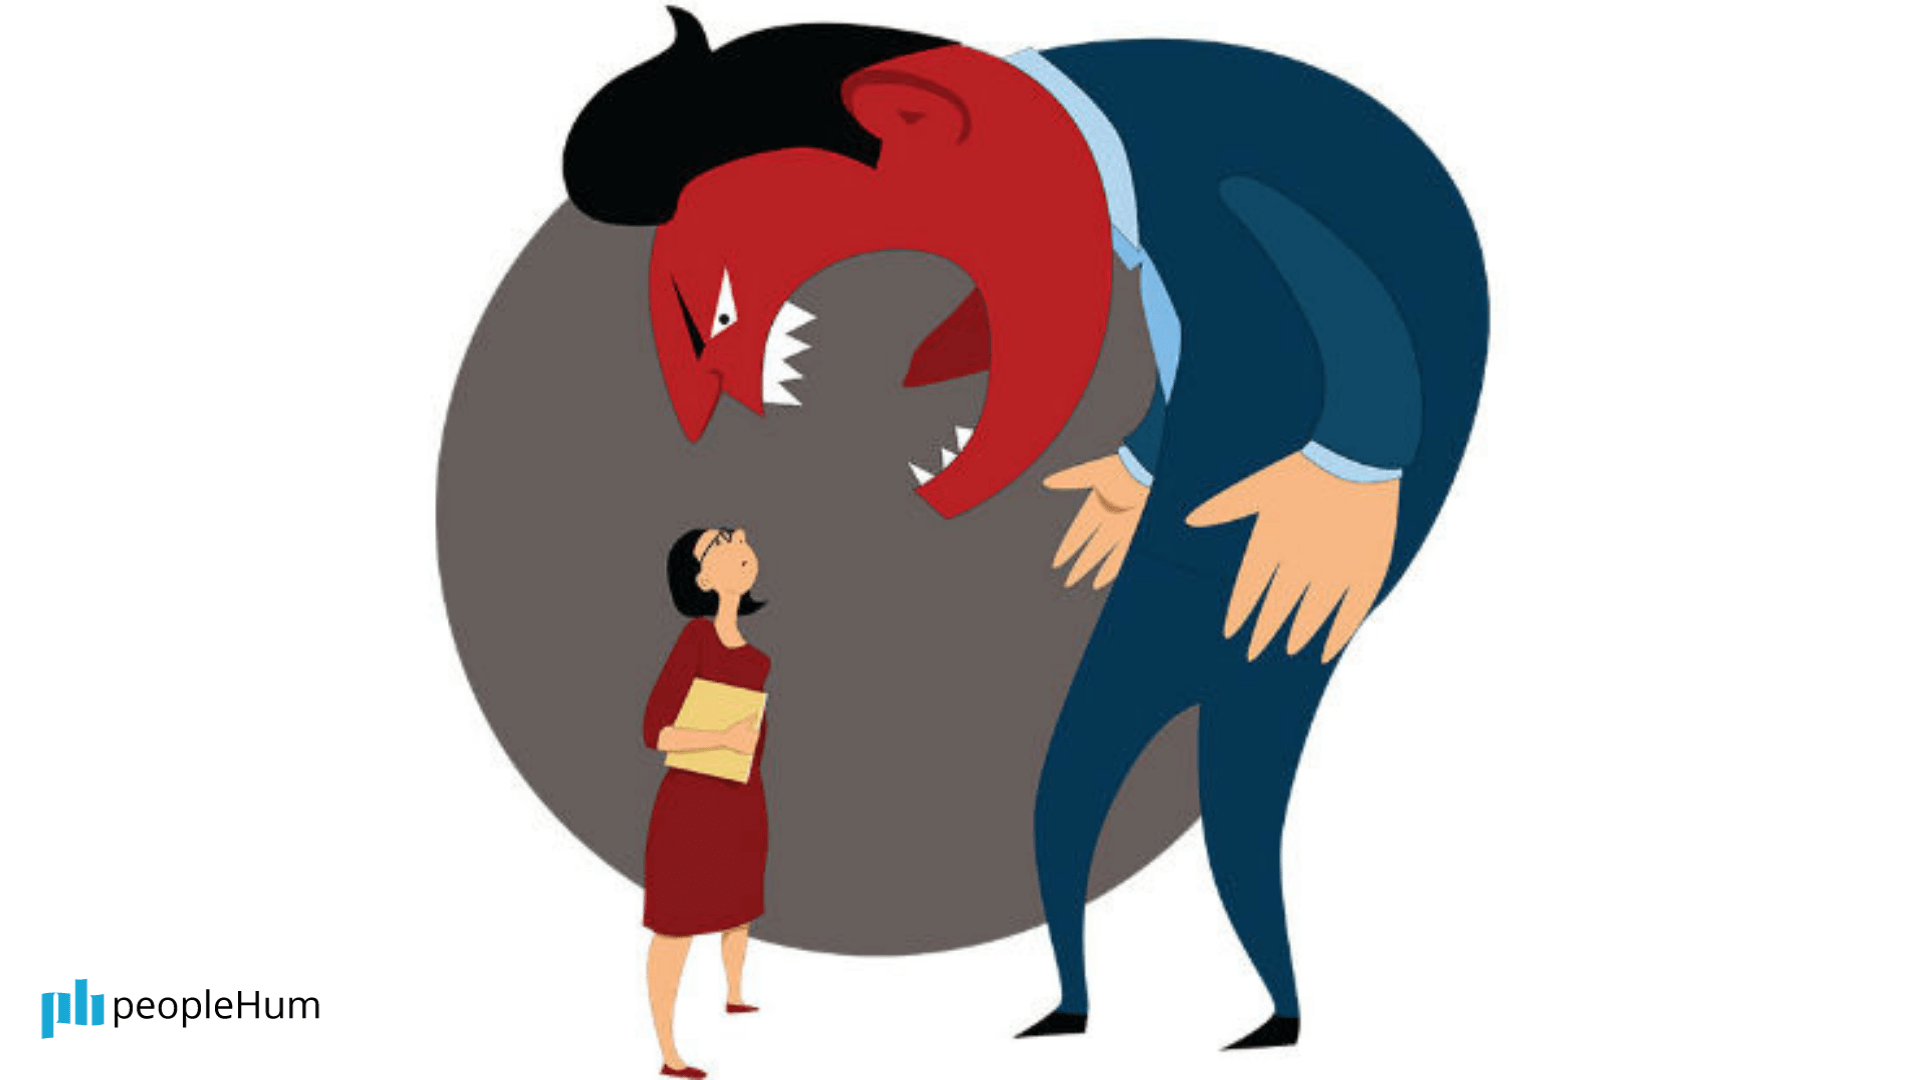 Improving workplace conflict requires understanding preferences